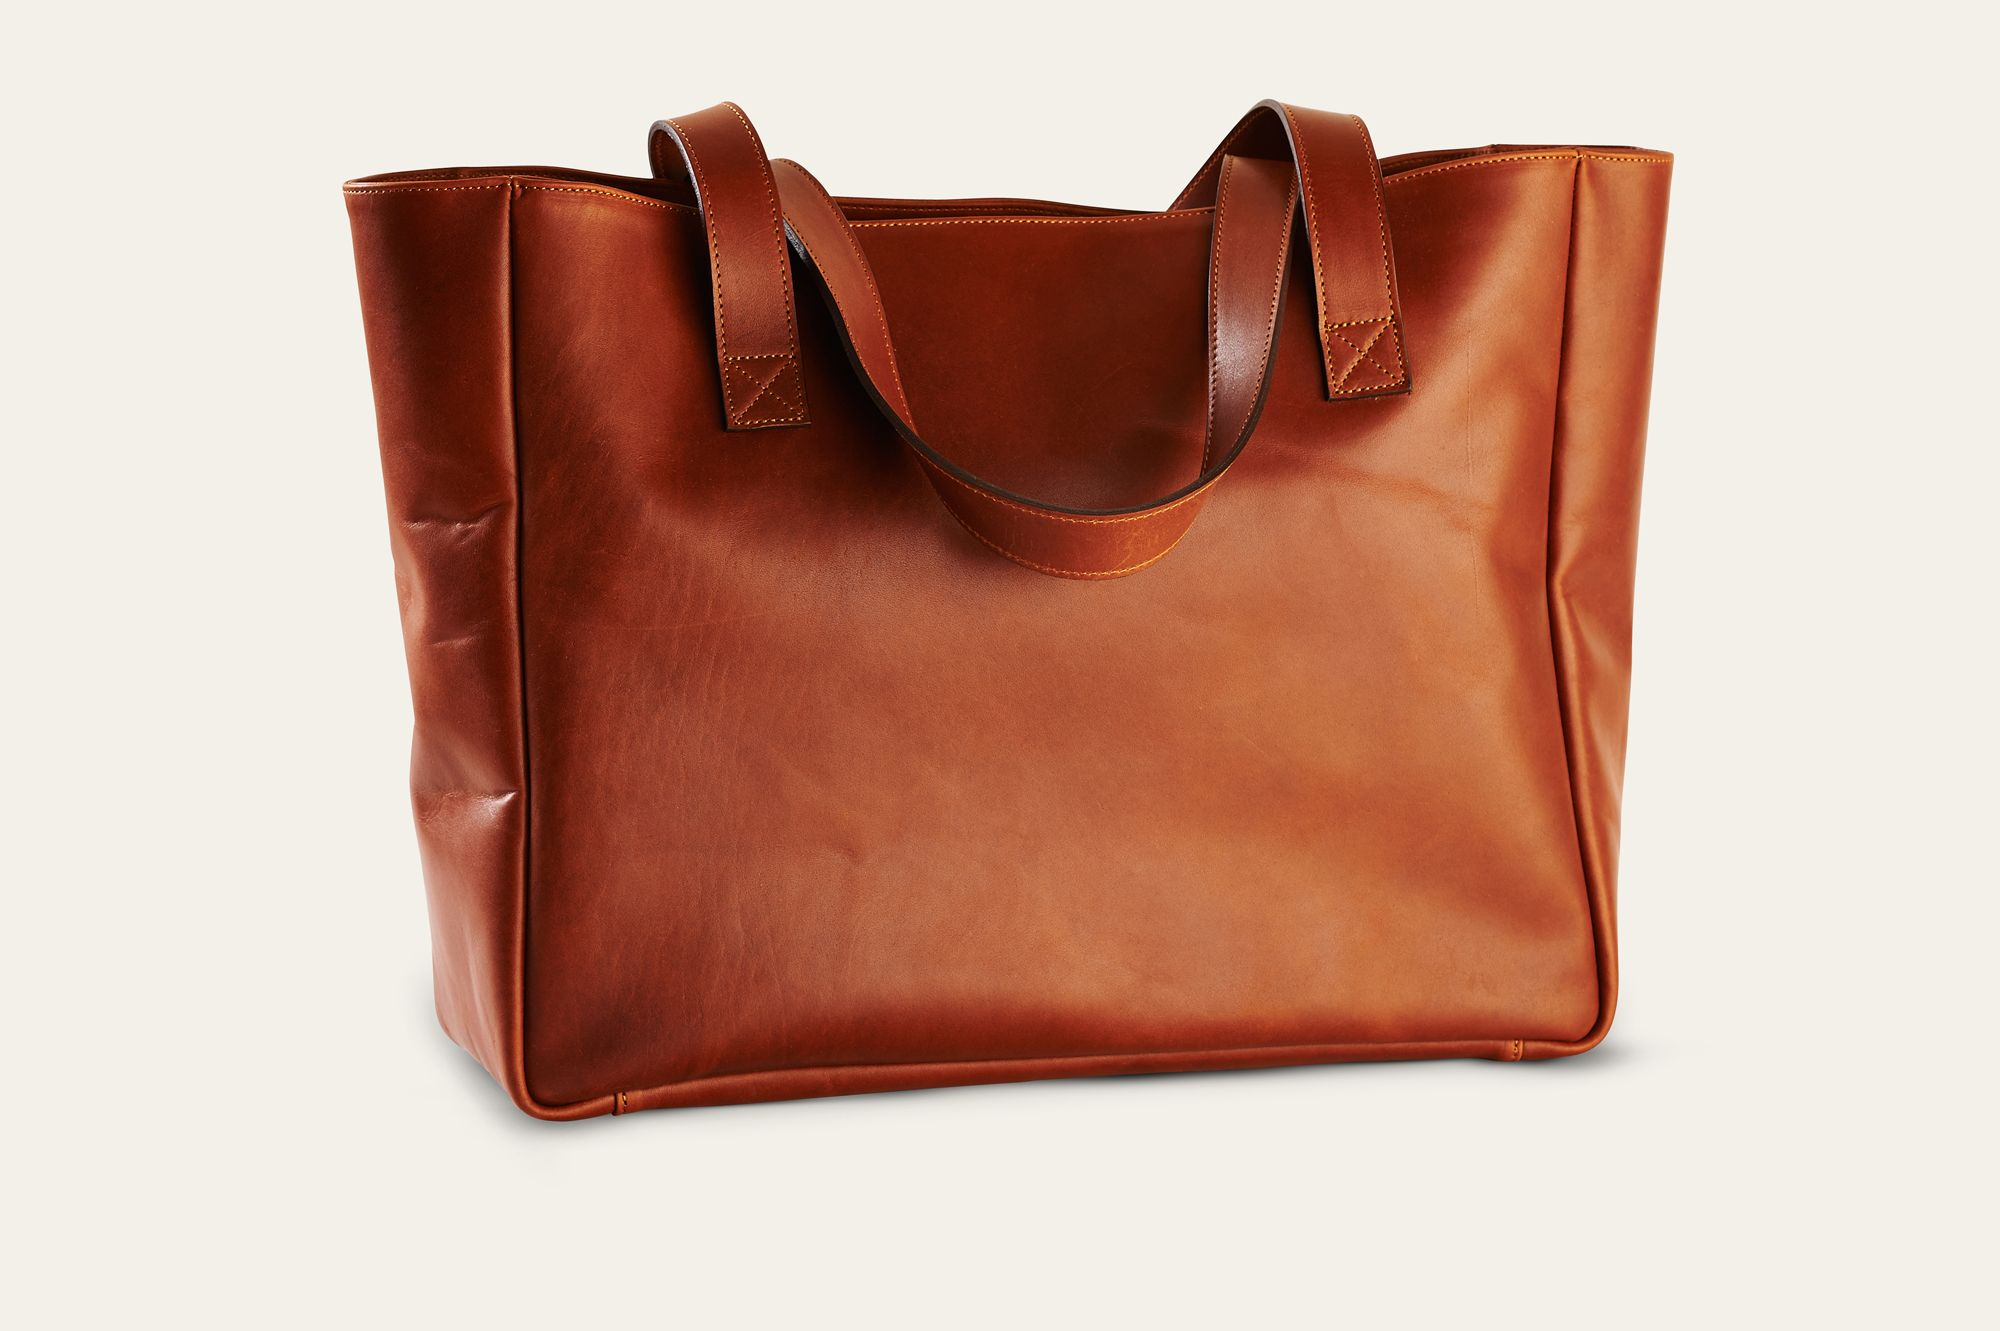 Our leather tote is in store, you can find our full rage on www.allthekingsmen.com.au